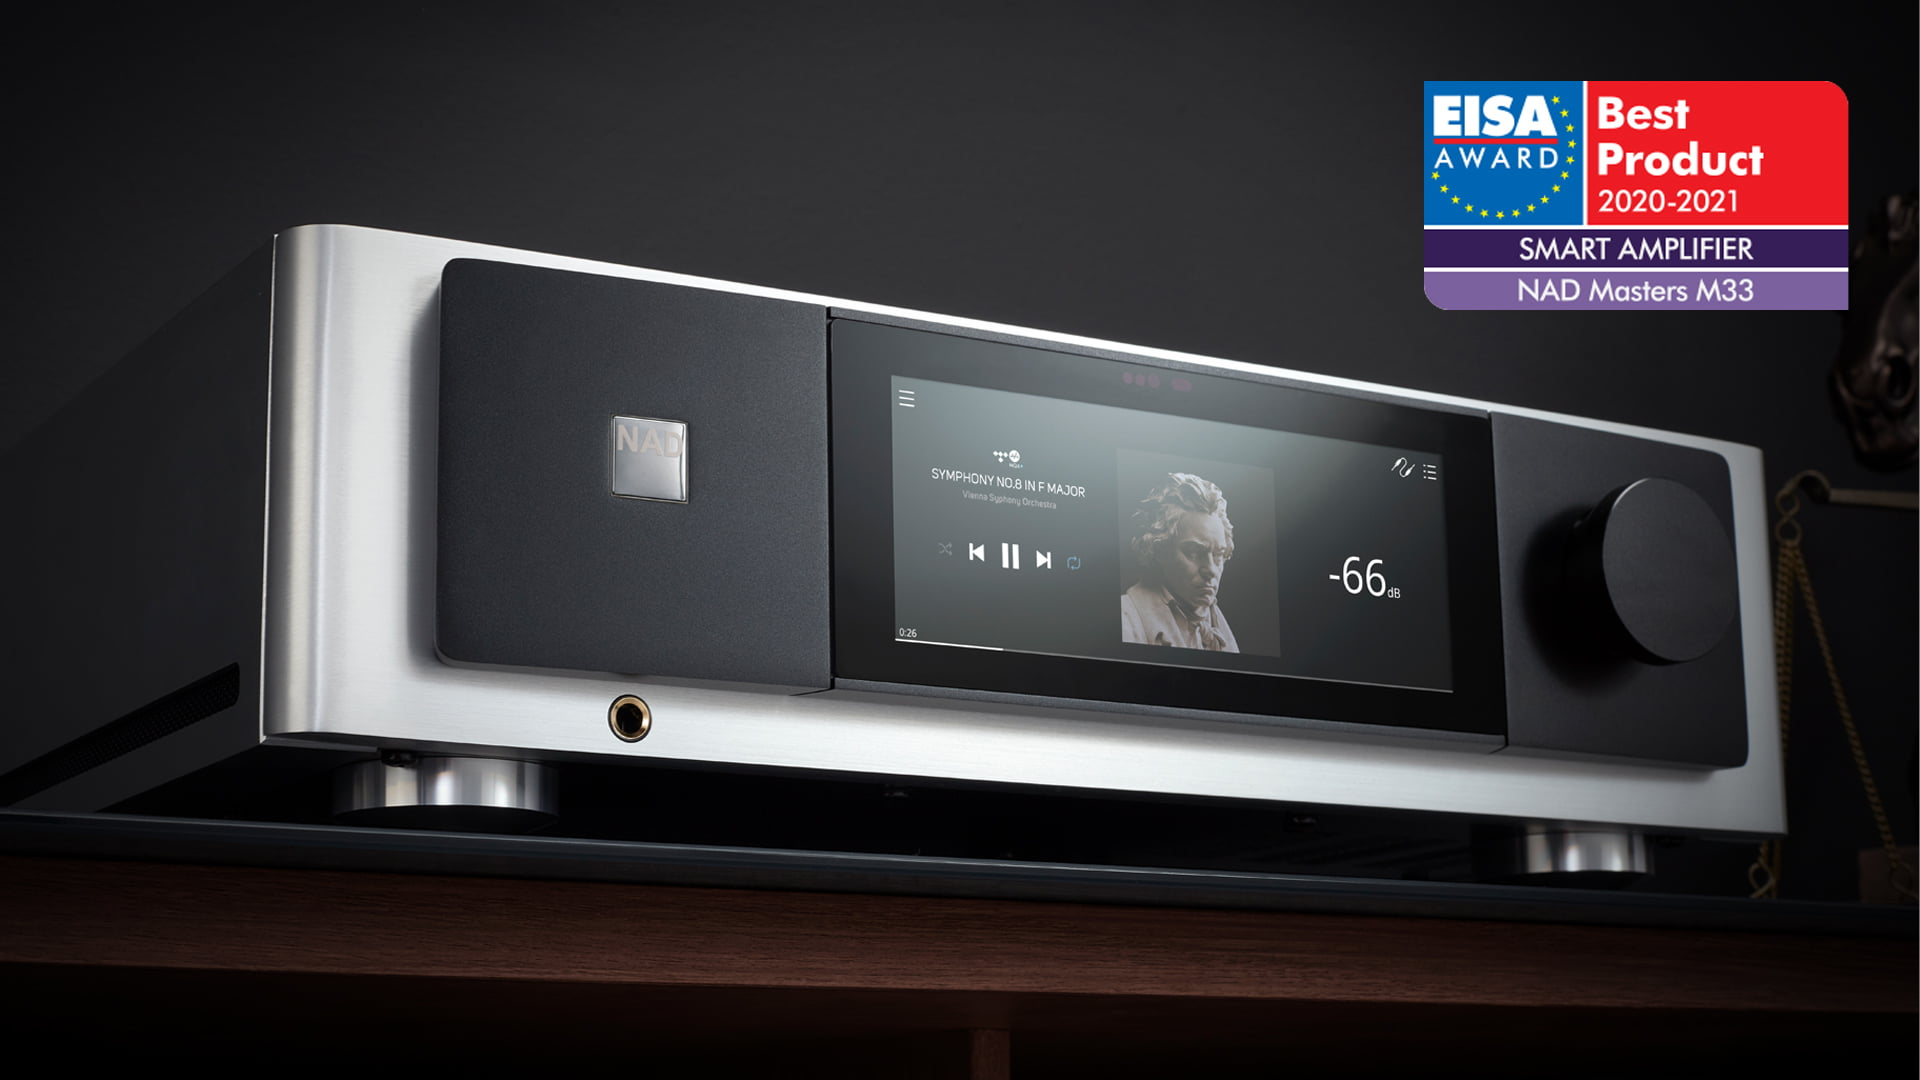 NAD Electronics' Masters M33 BluOS® Streaming DAC Amplifier Awarded Top Honour by World's Most Prestigious Hi-Fi Press